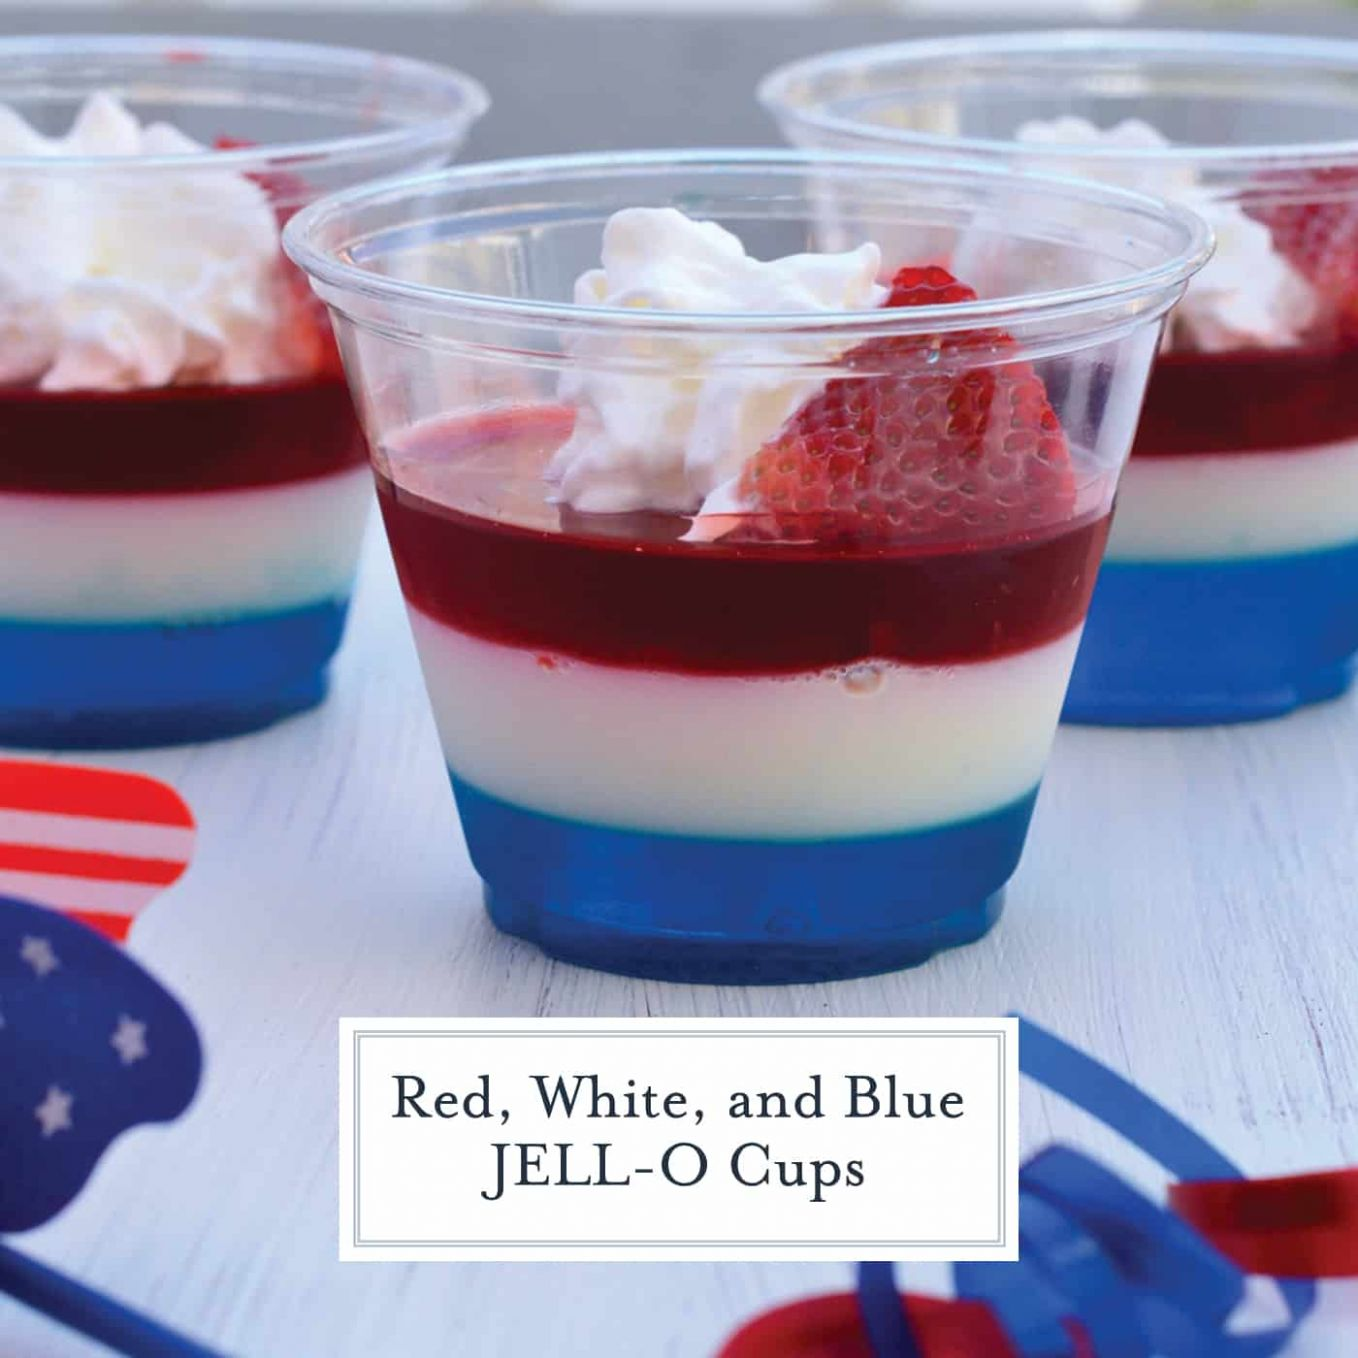 Red White and Blue JELL-O Cups - A Patriotic Treat